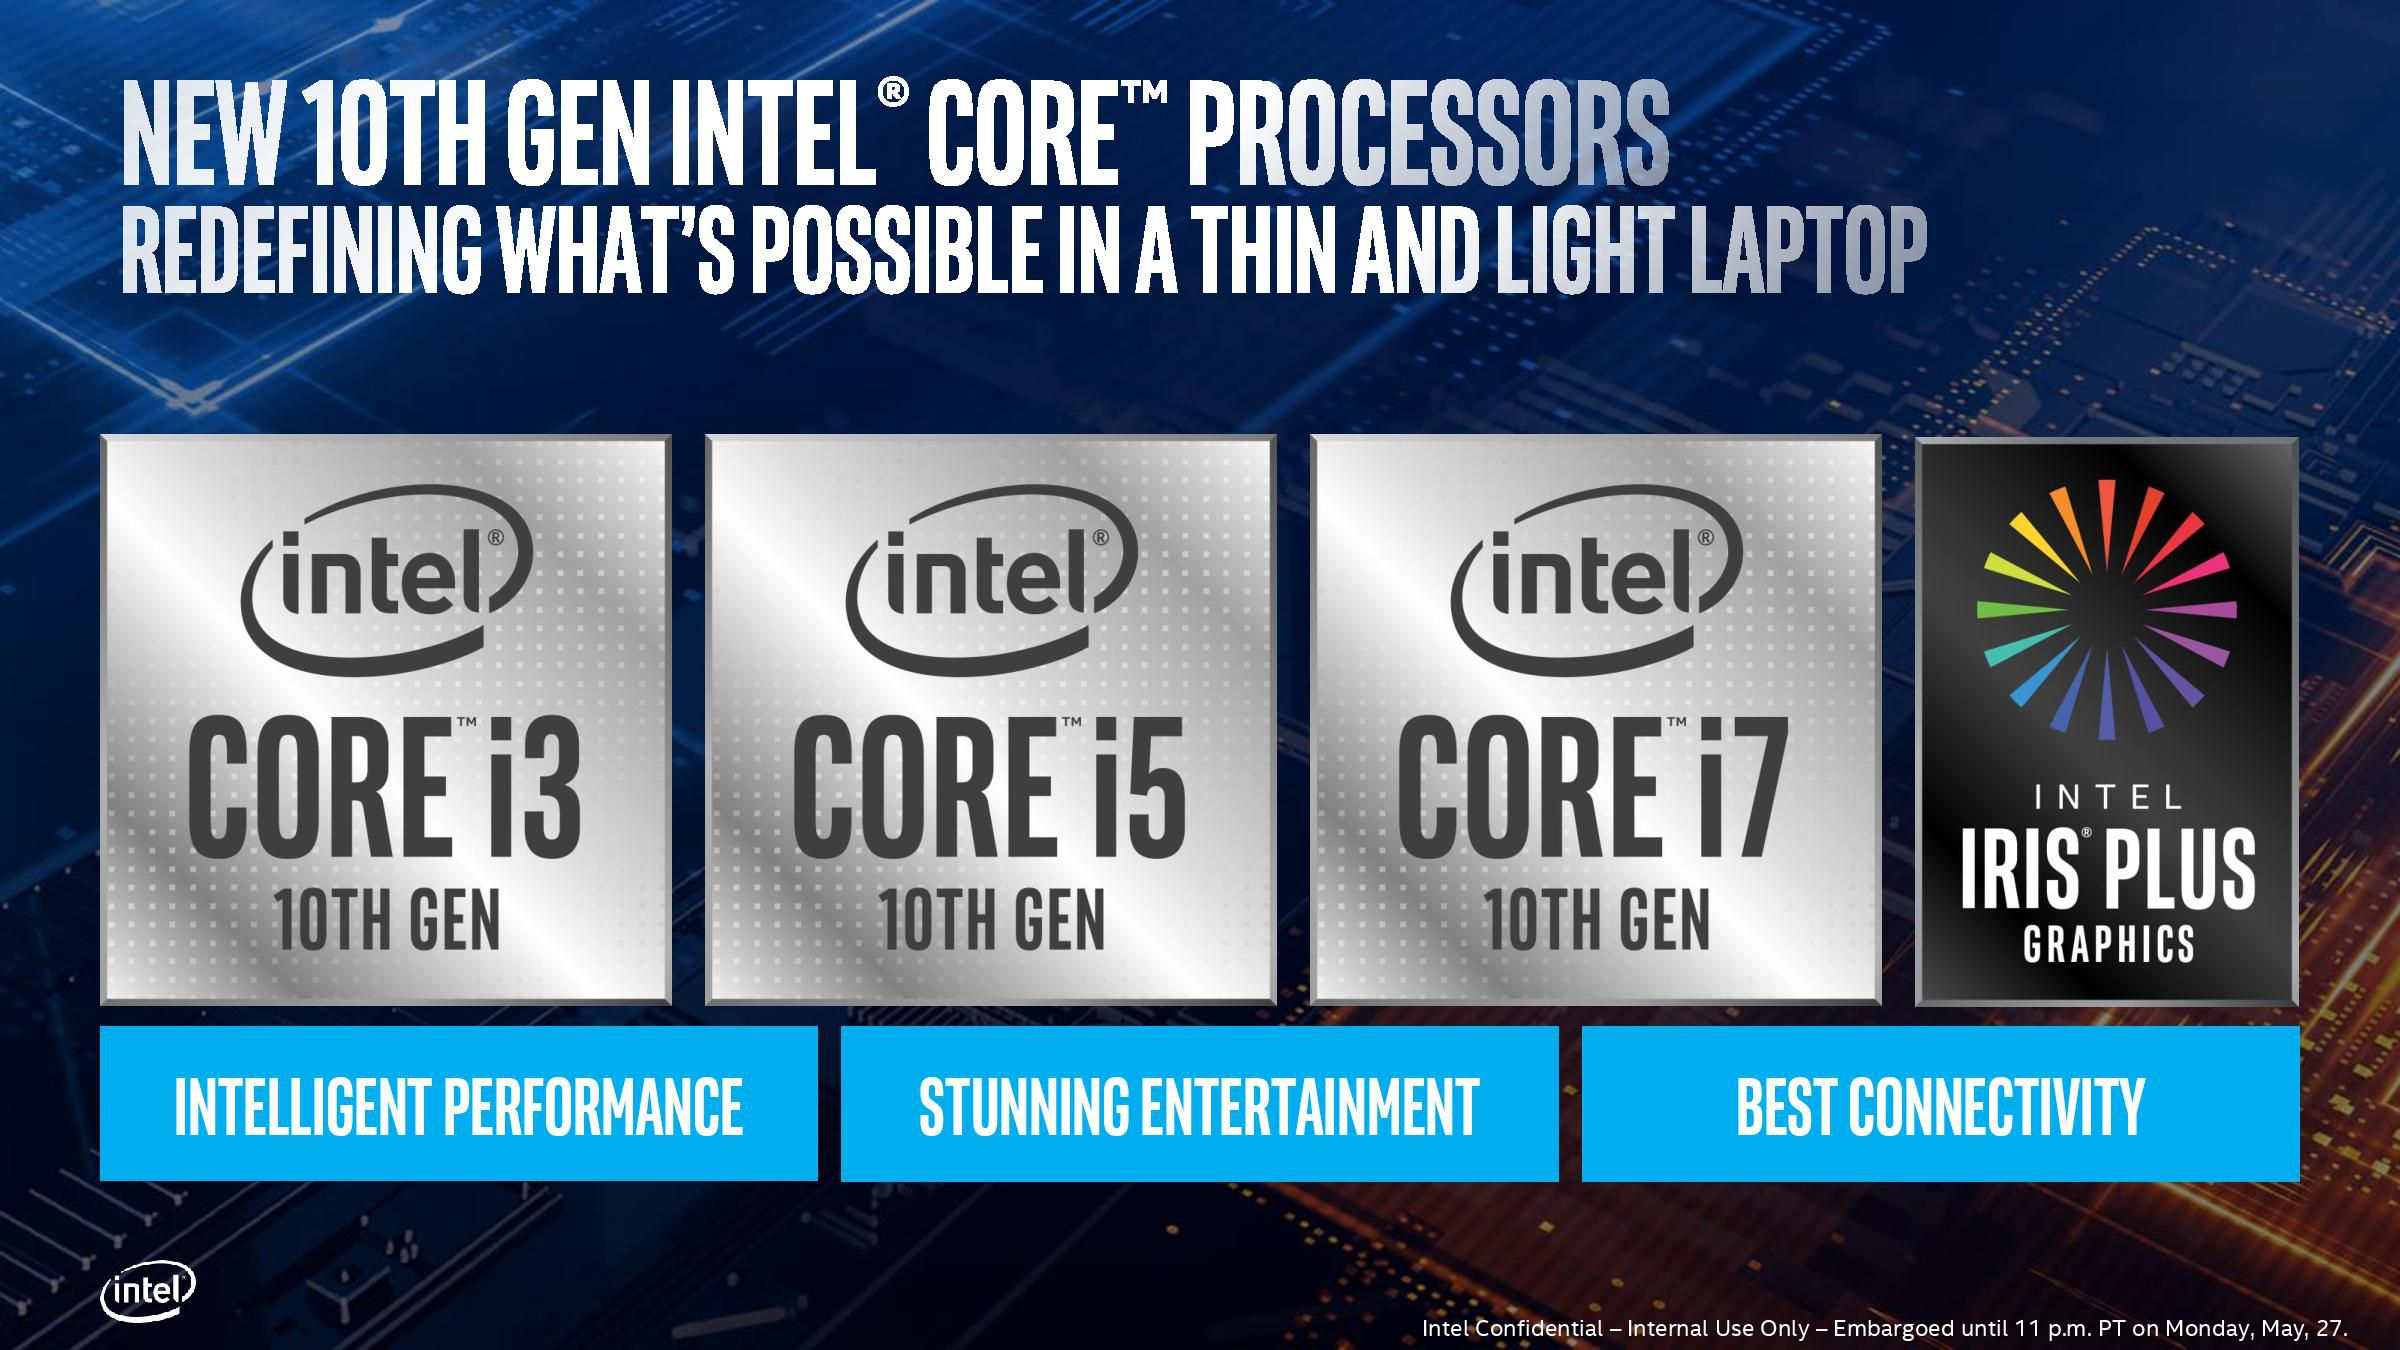 10th Gen Intel Core Processors: Everything you need to know